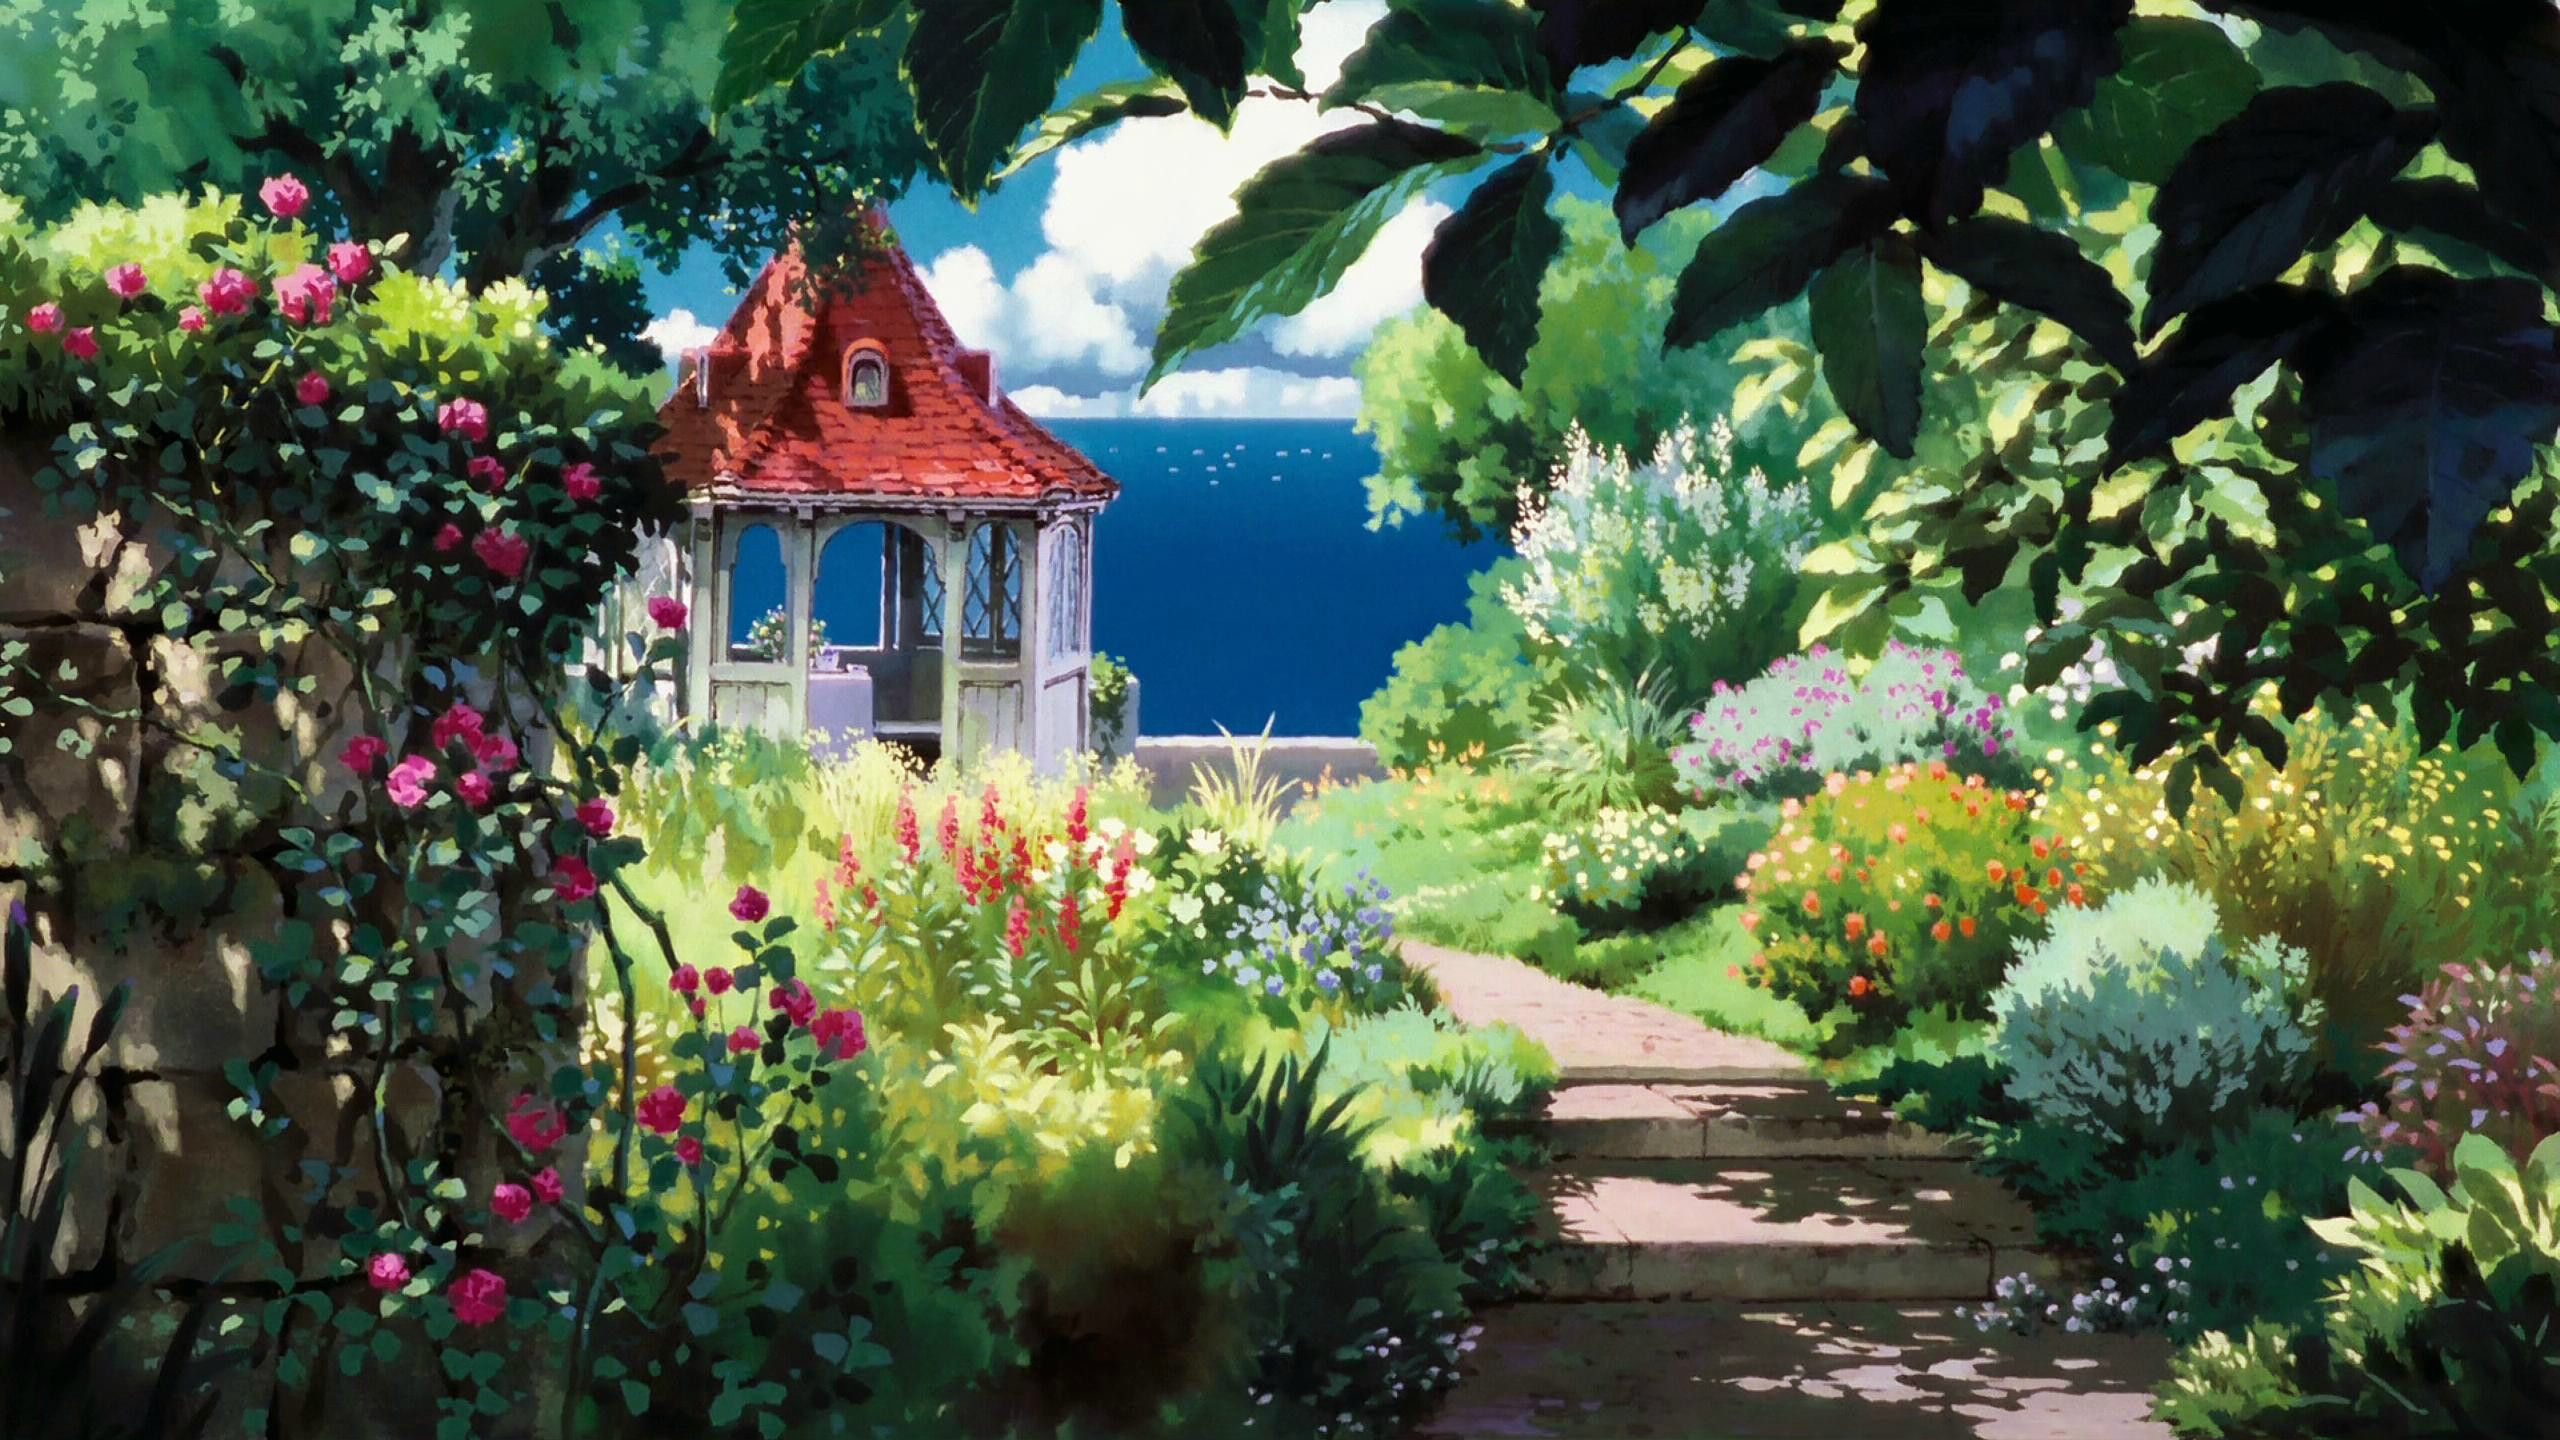 Studio Ghibli Backgrounds in 2020 Studio ghibli